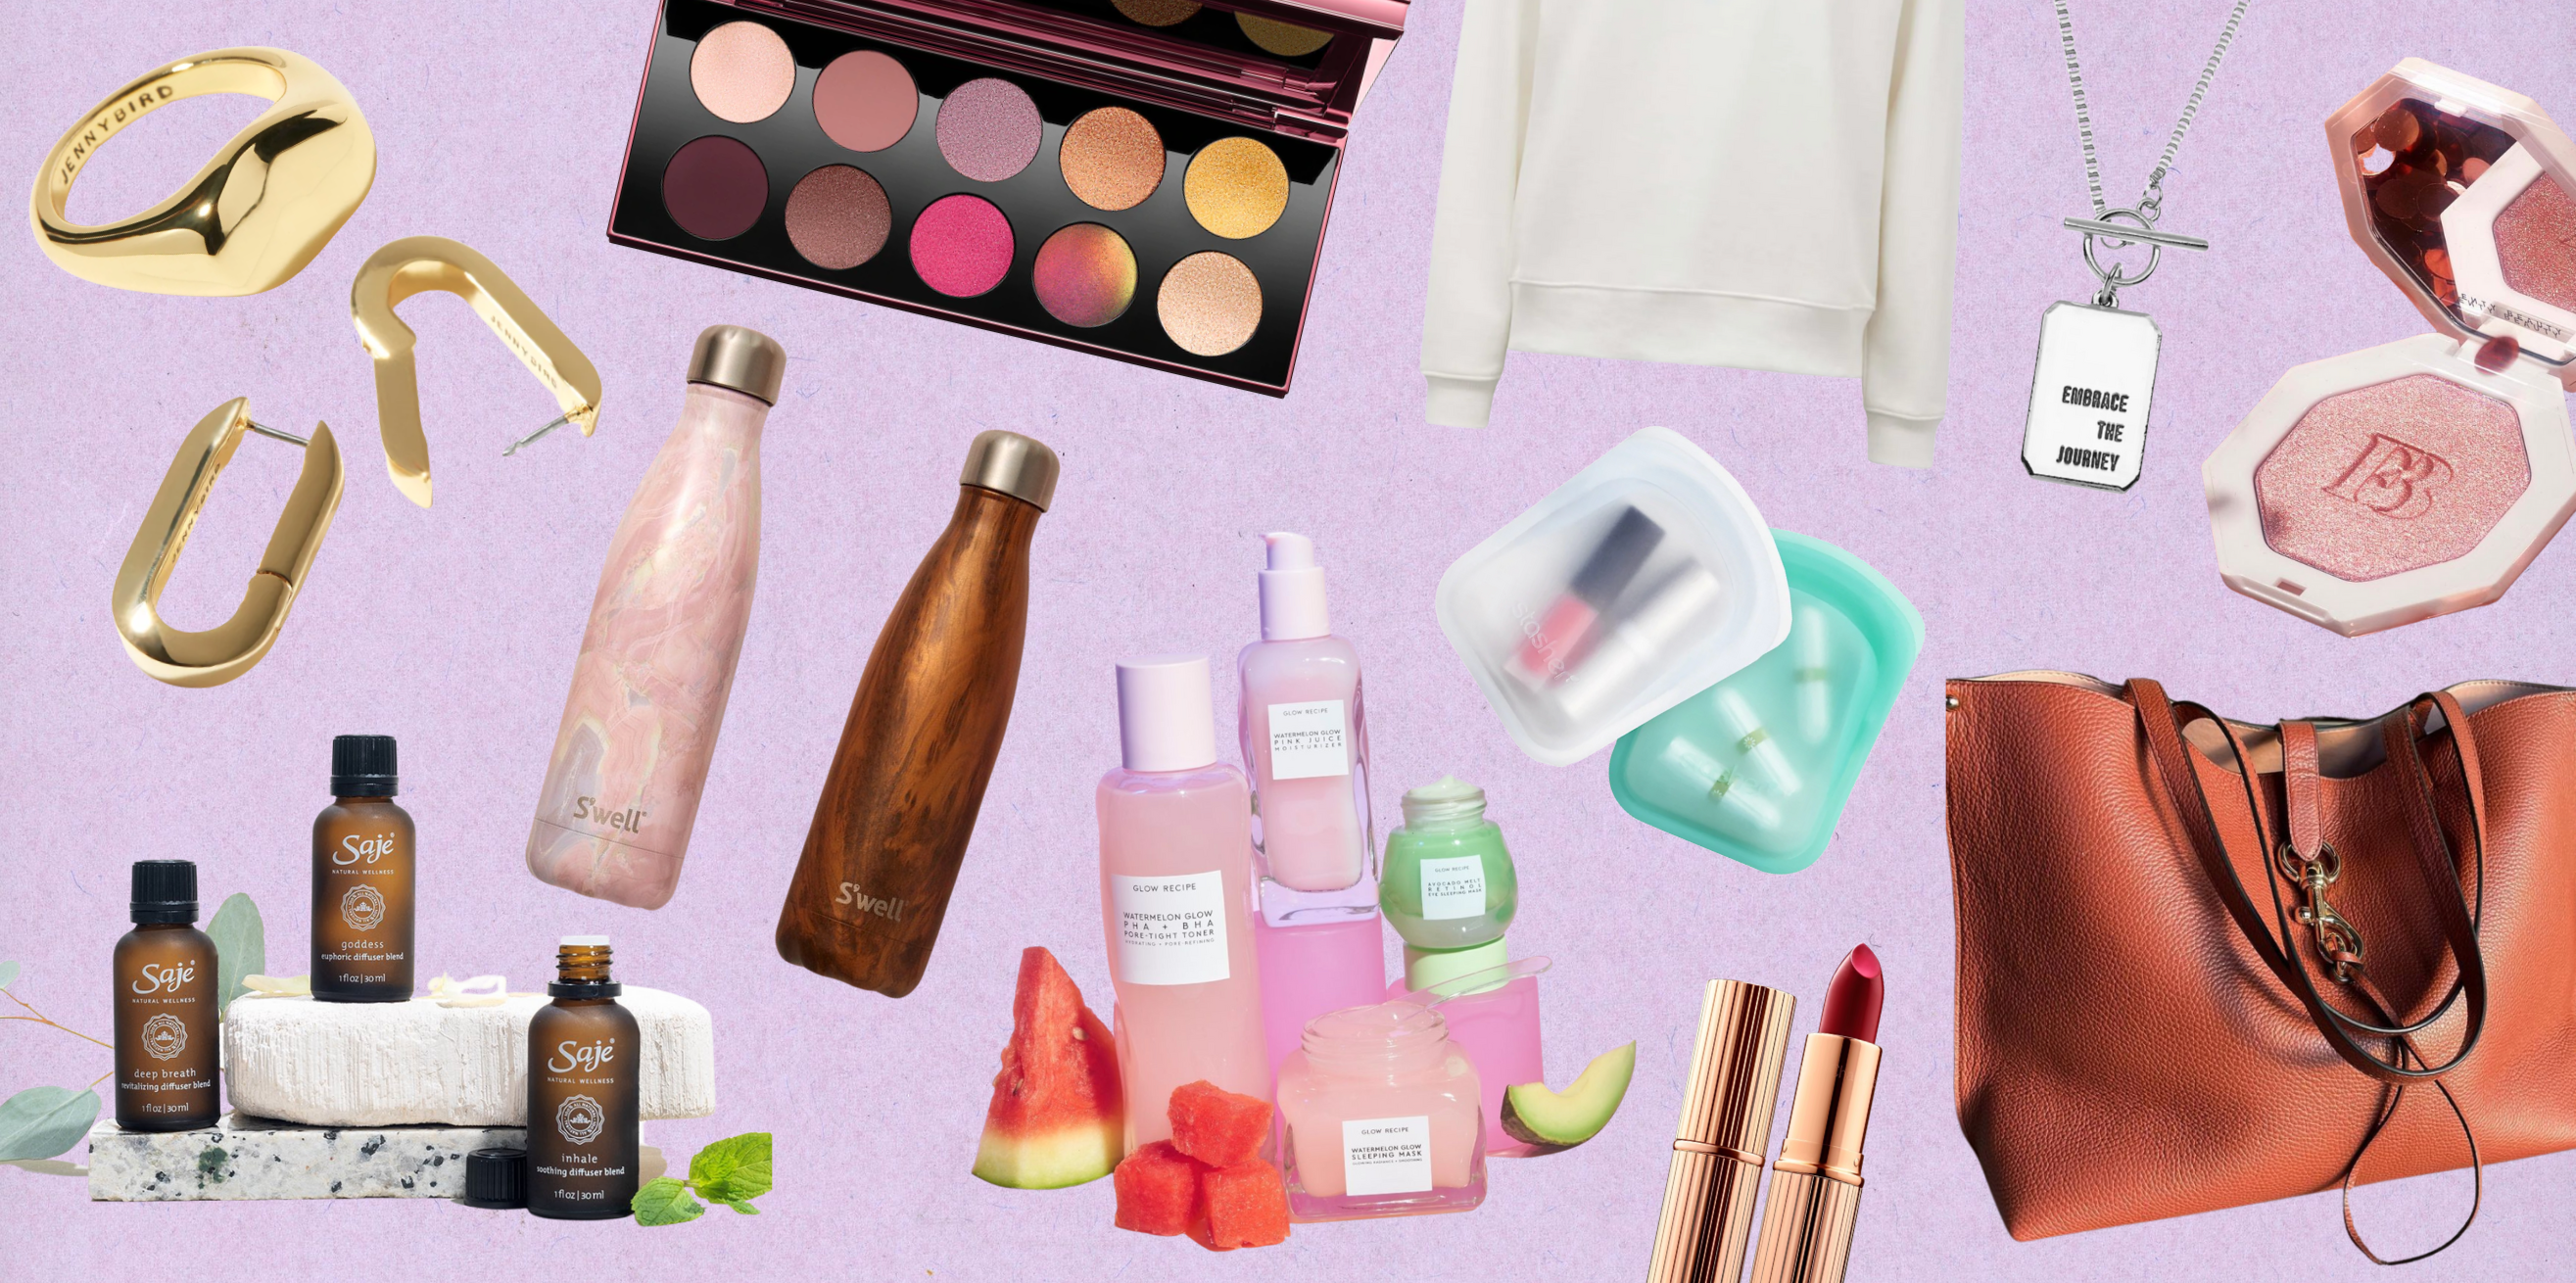 Female-Owned Brands To Know And Love - makeup, fashion, home & wellness